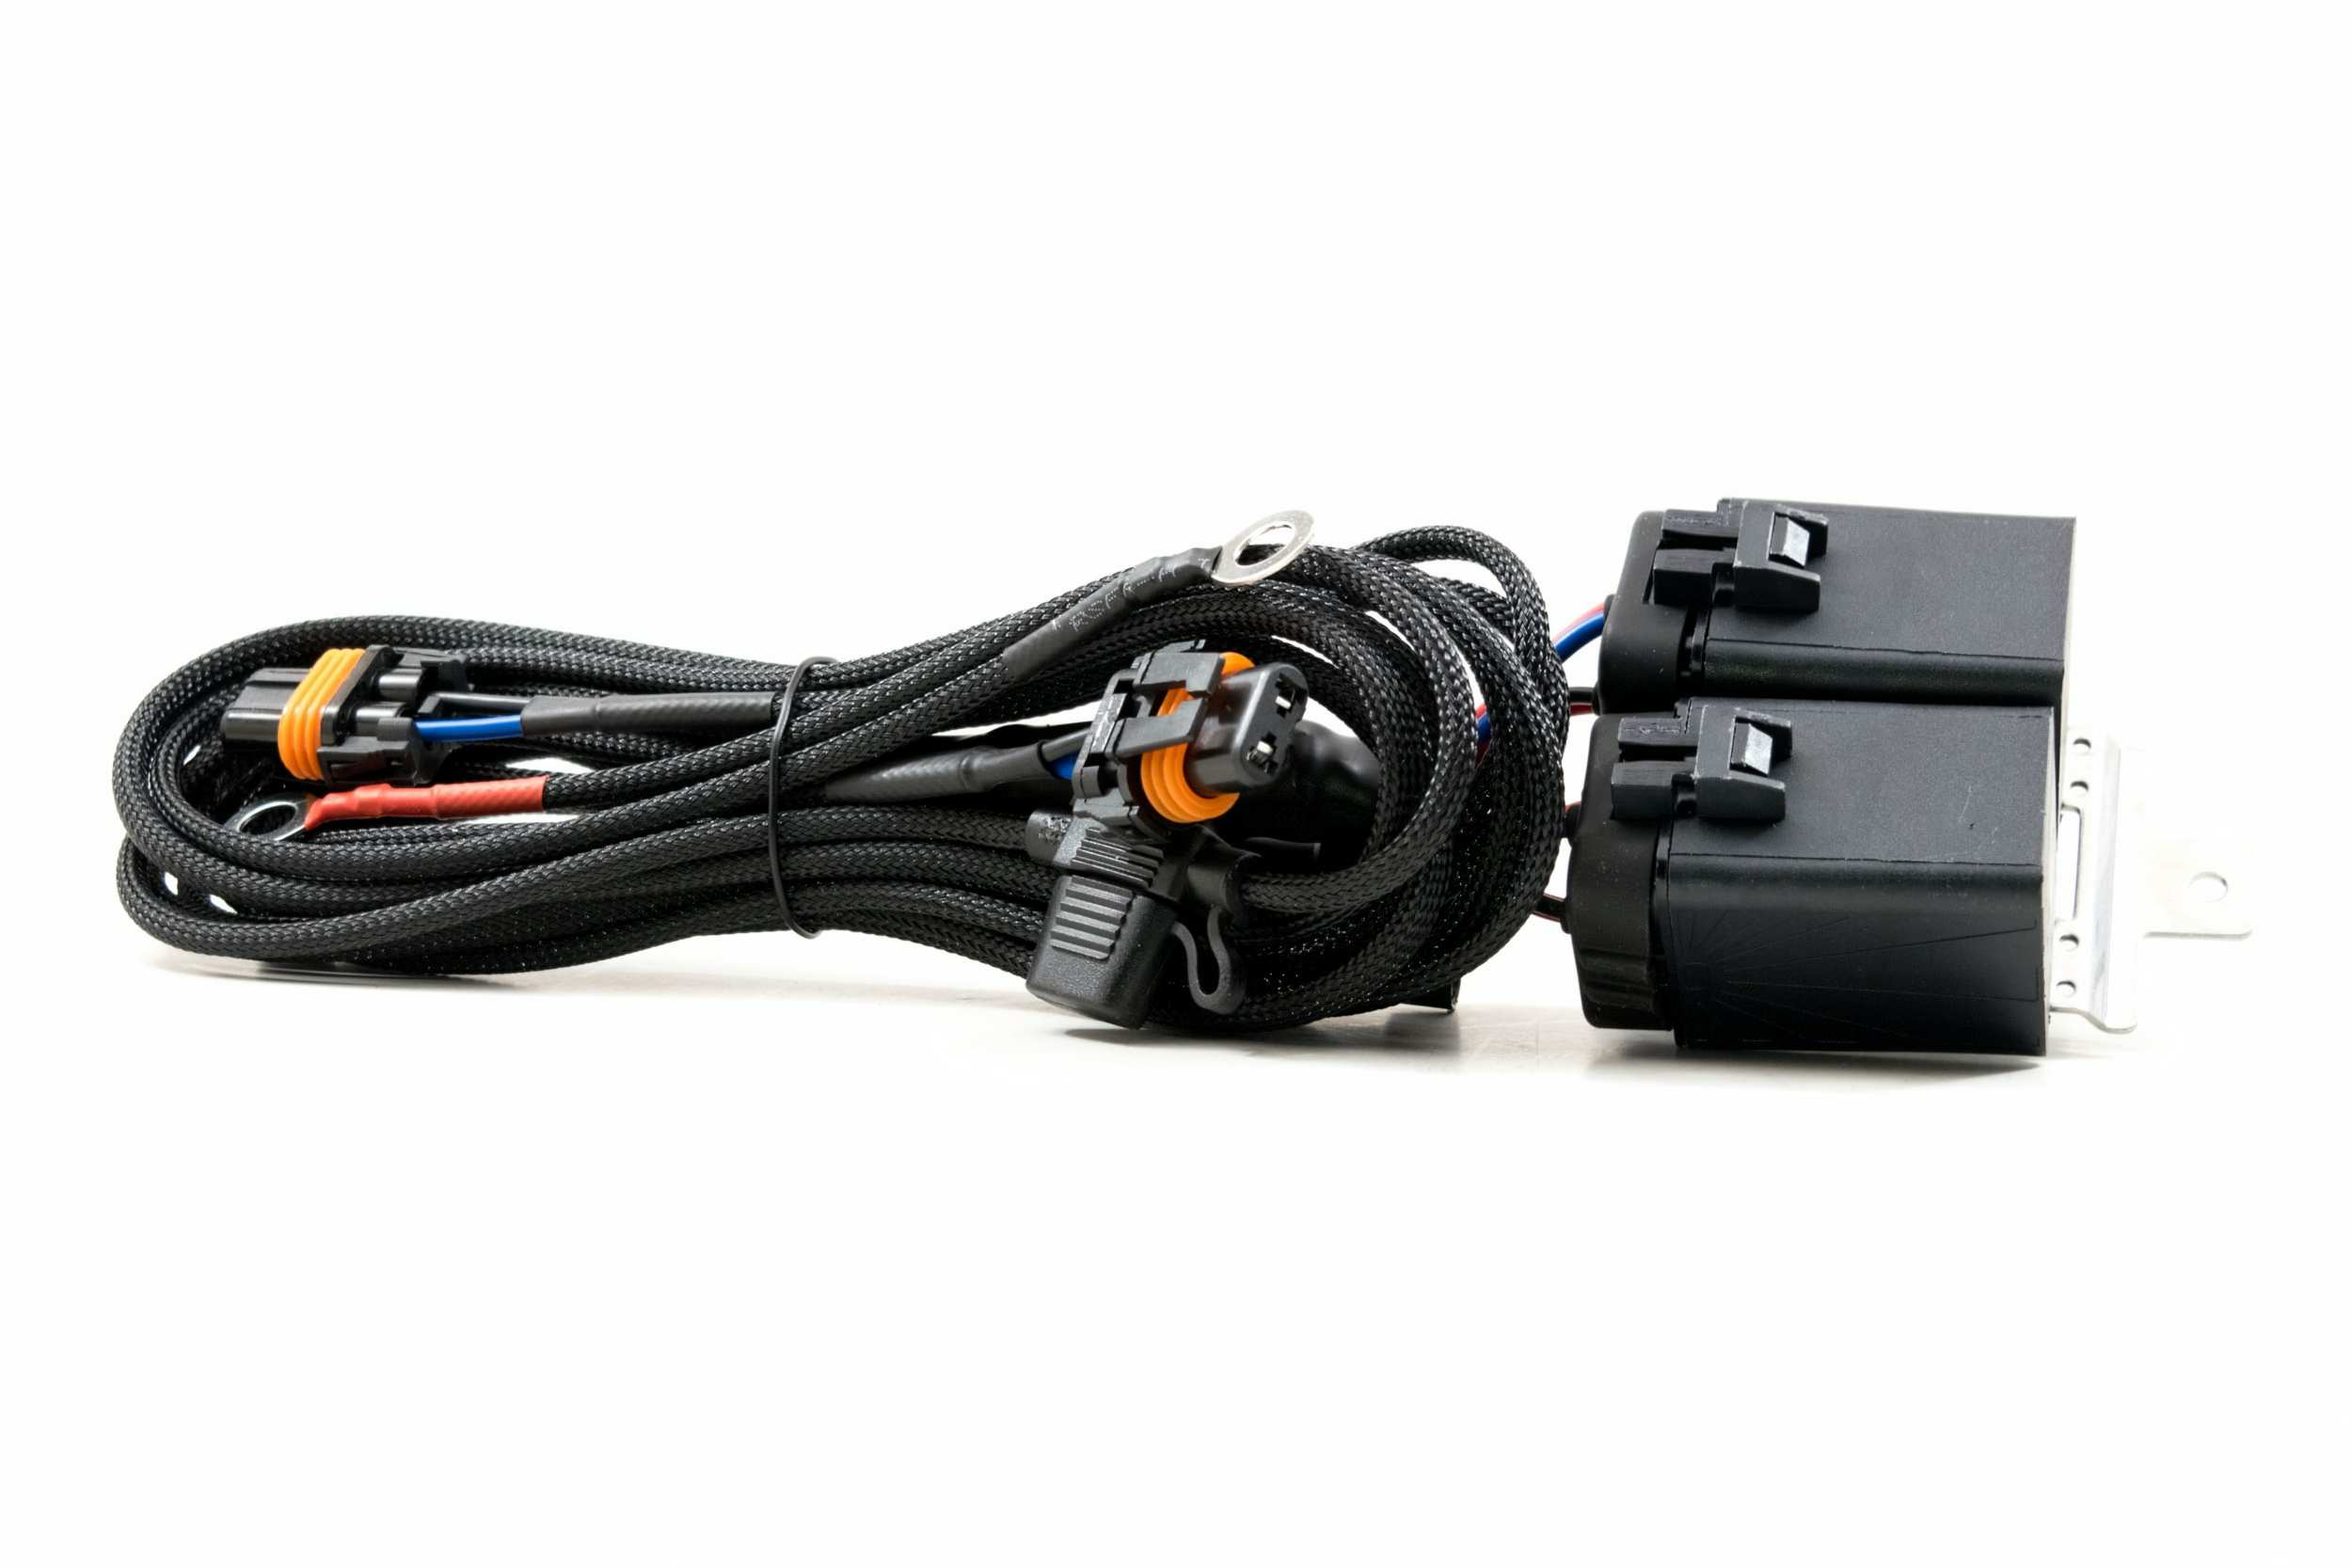 9007 5202 H8 9004 9006 H9 H4 H7 H11 H13 9005 Innovited HID relay wiring harness Universal for all single bulb size H1 880 H3 H10